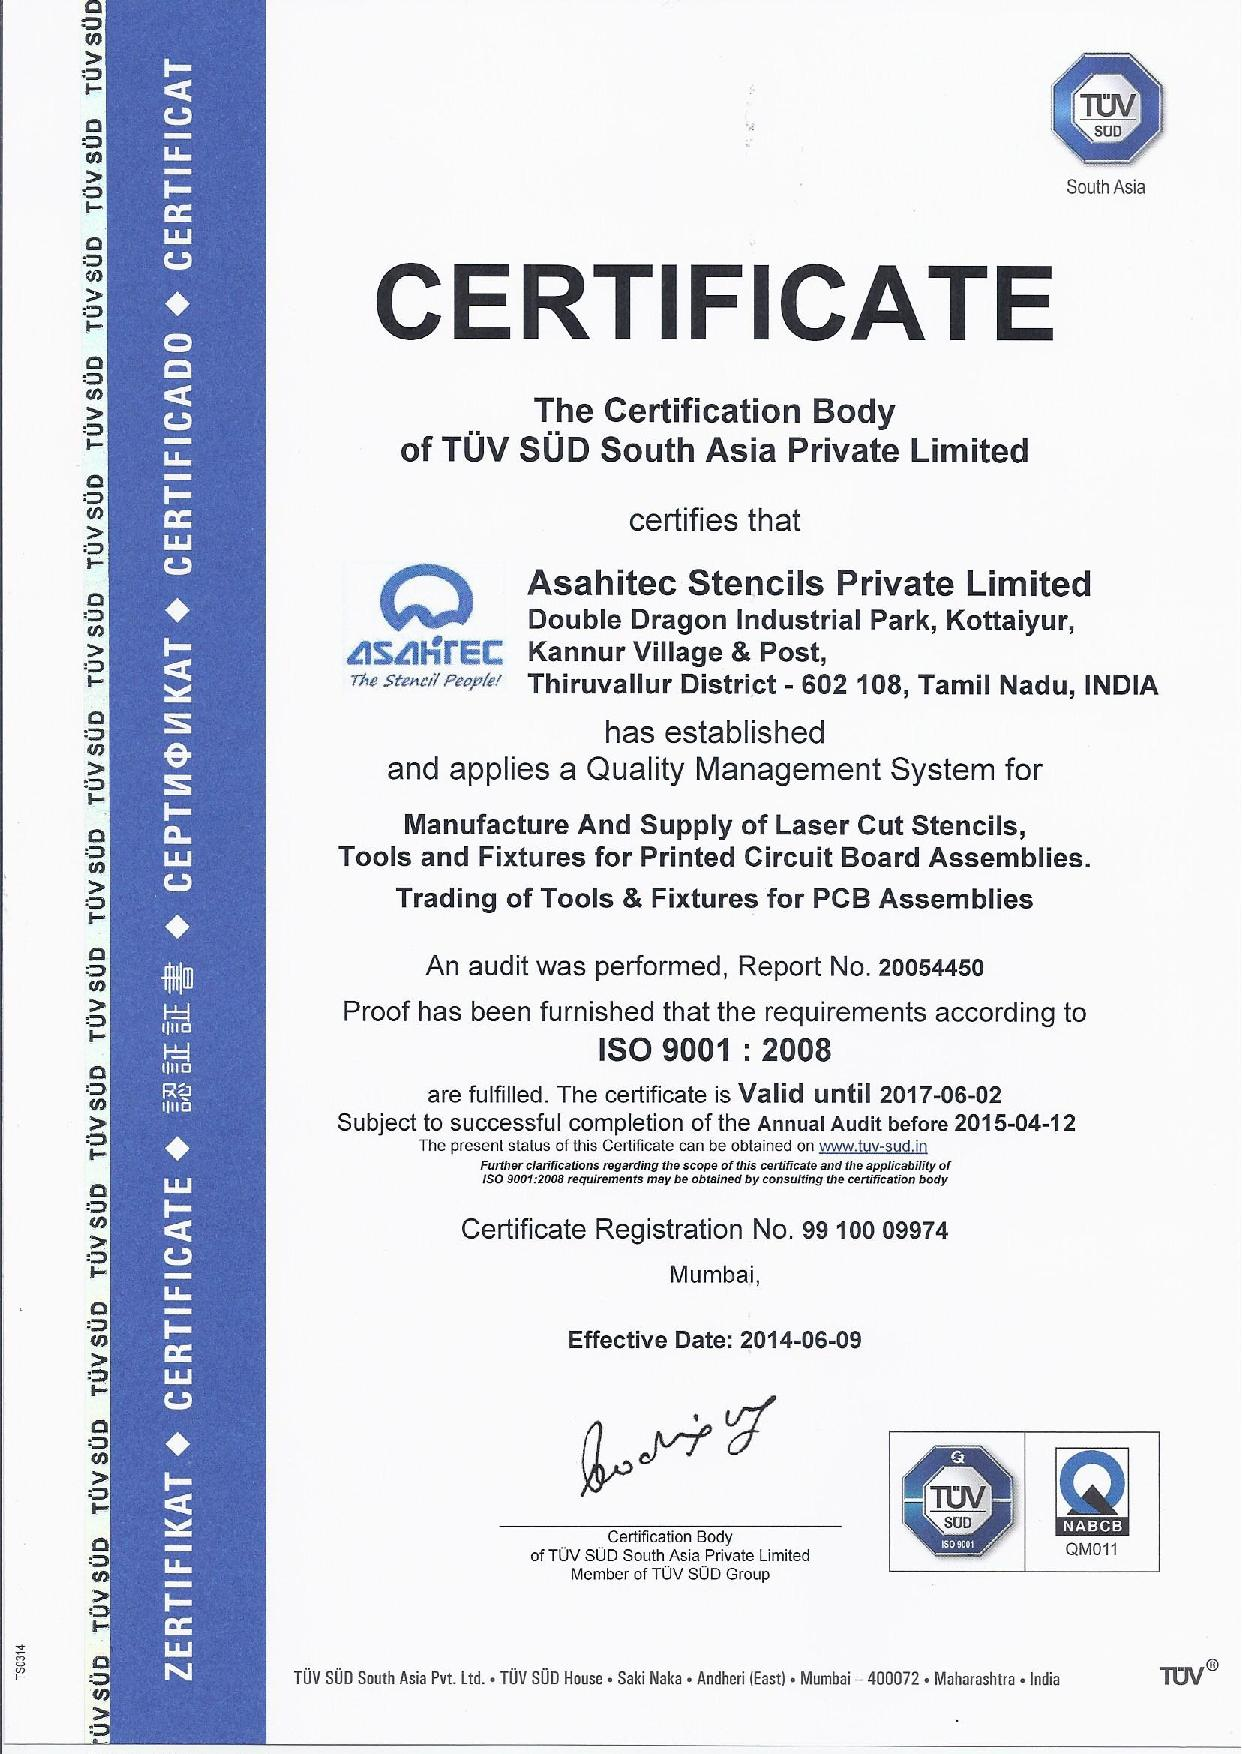 Asahitec Ipc Certified Manufacturers Iso 90012008 Certification